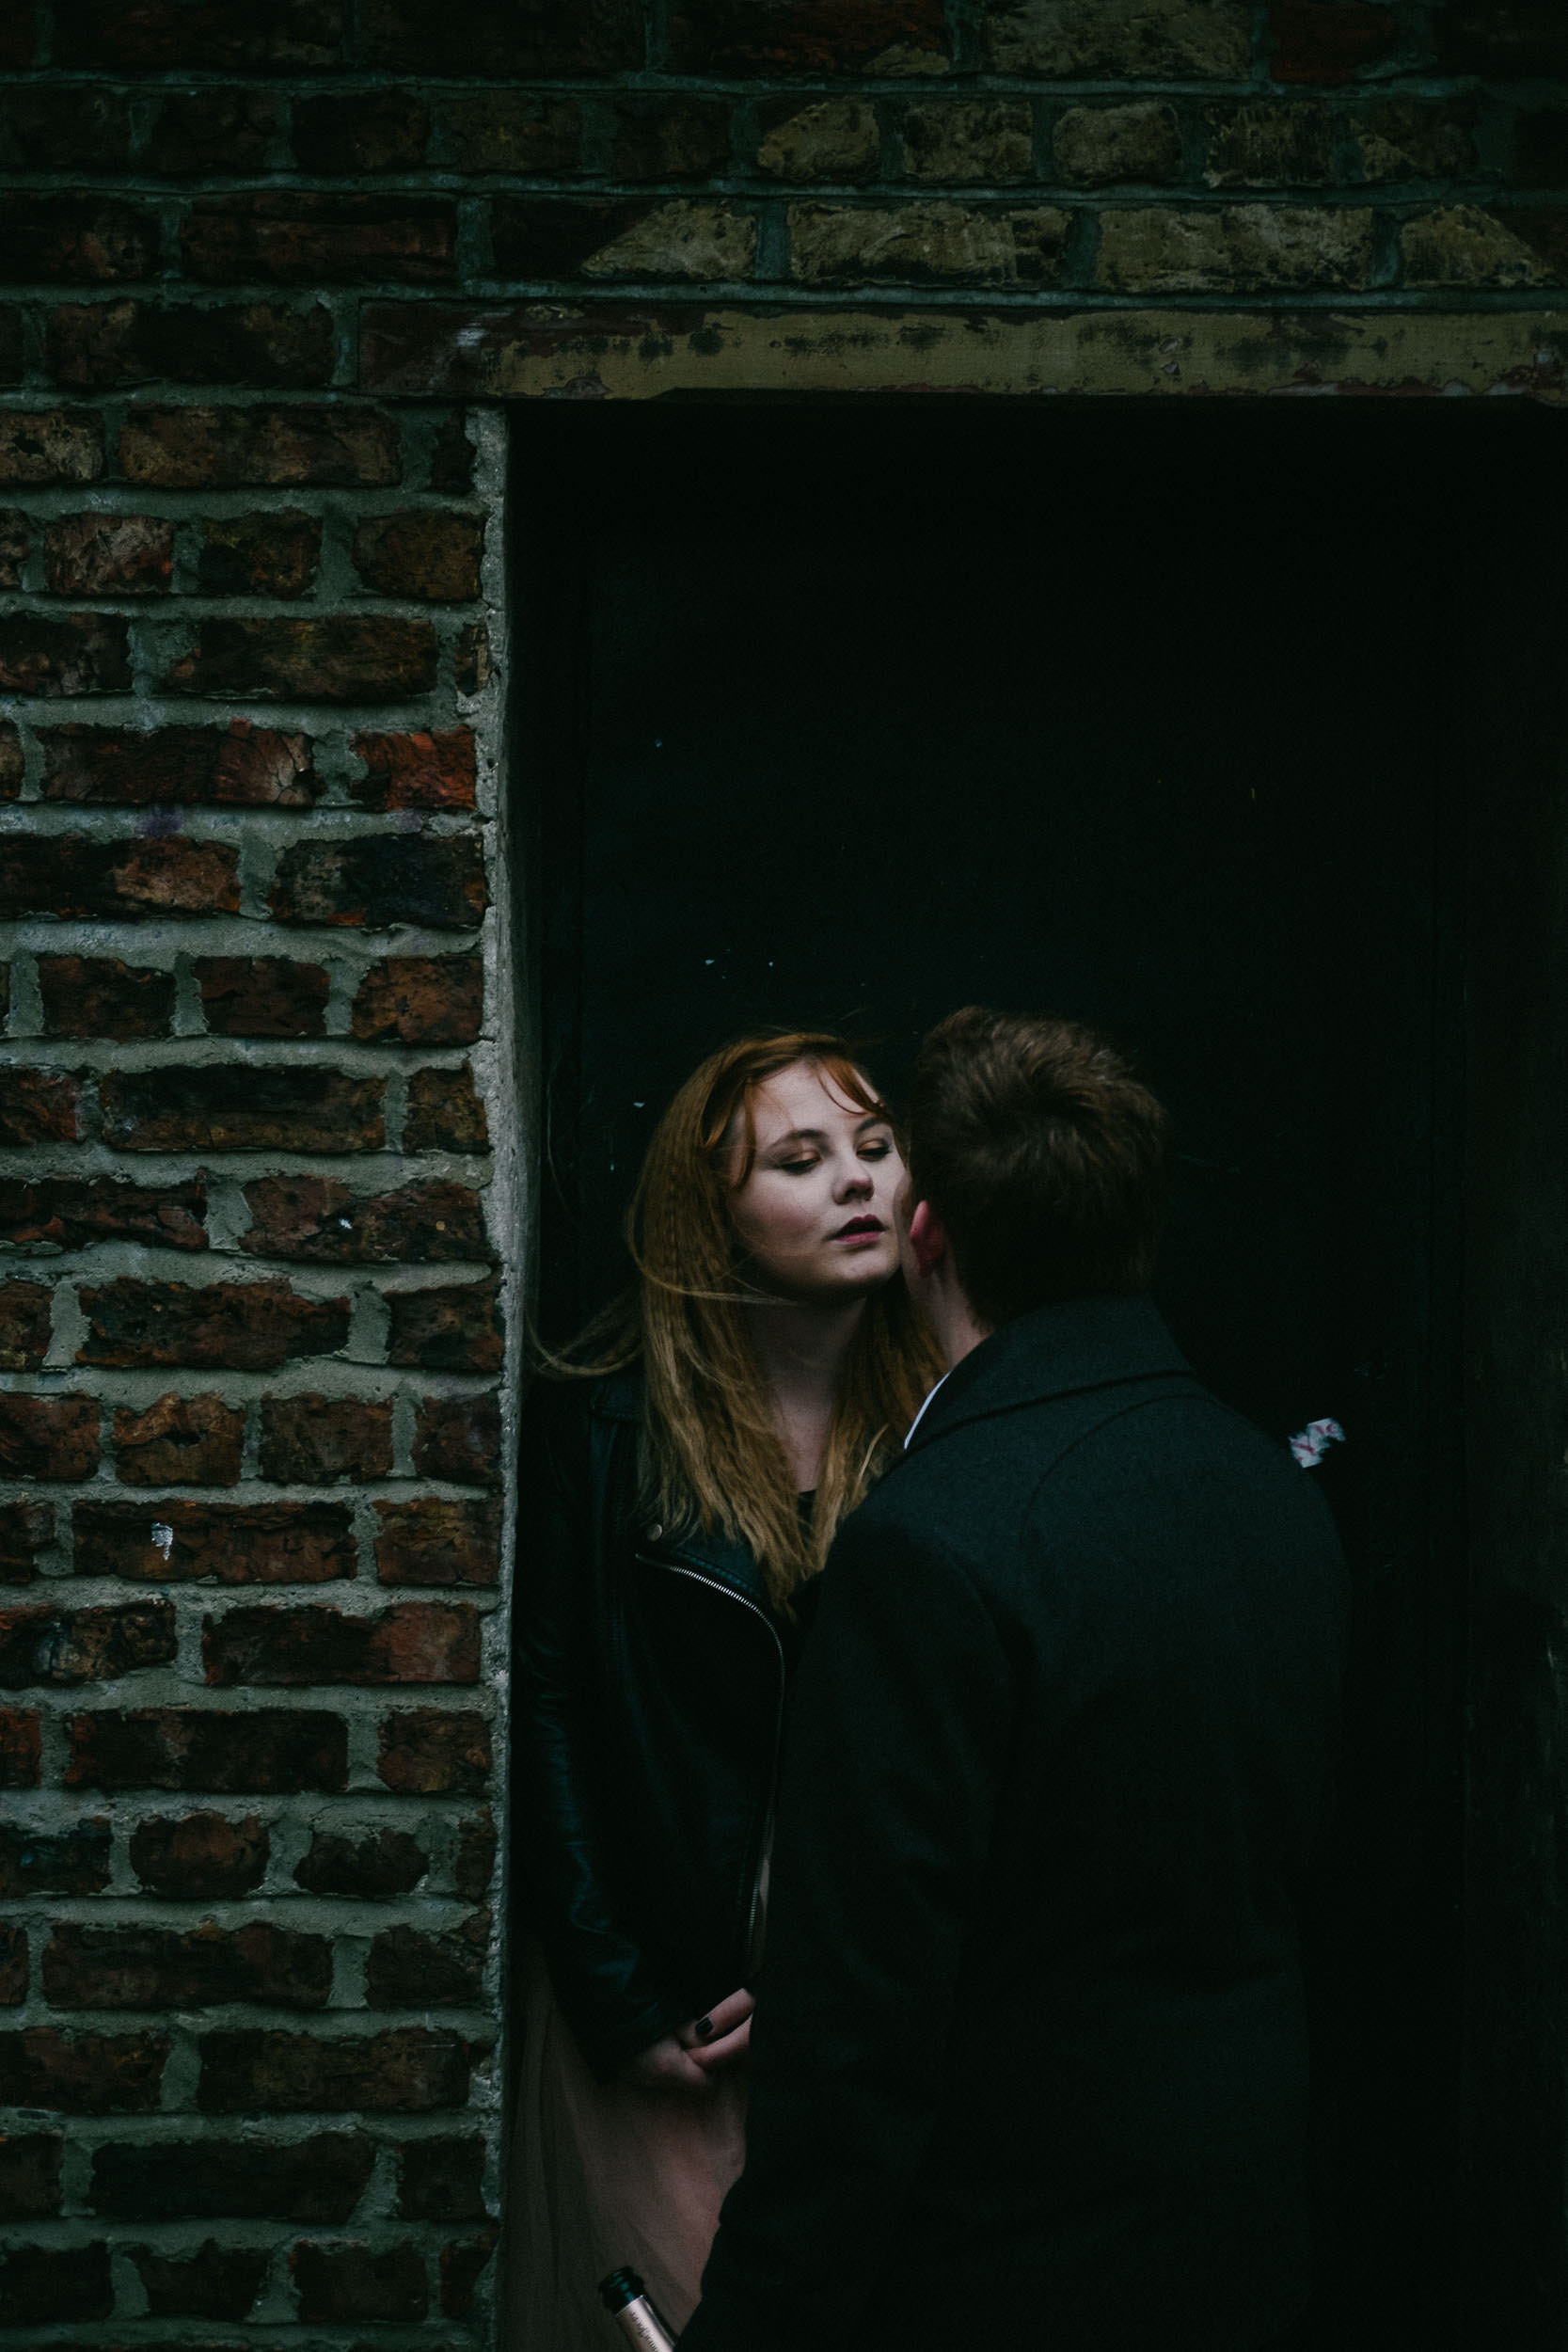 Engaged couple look at each other intensely in a brick doorway